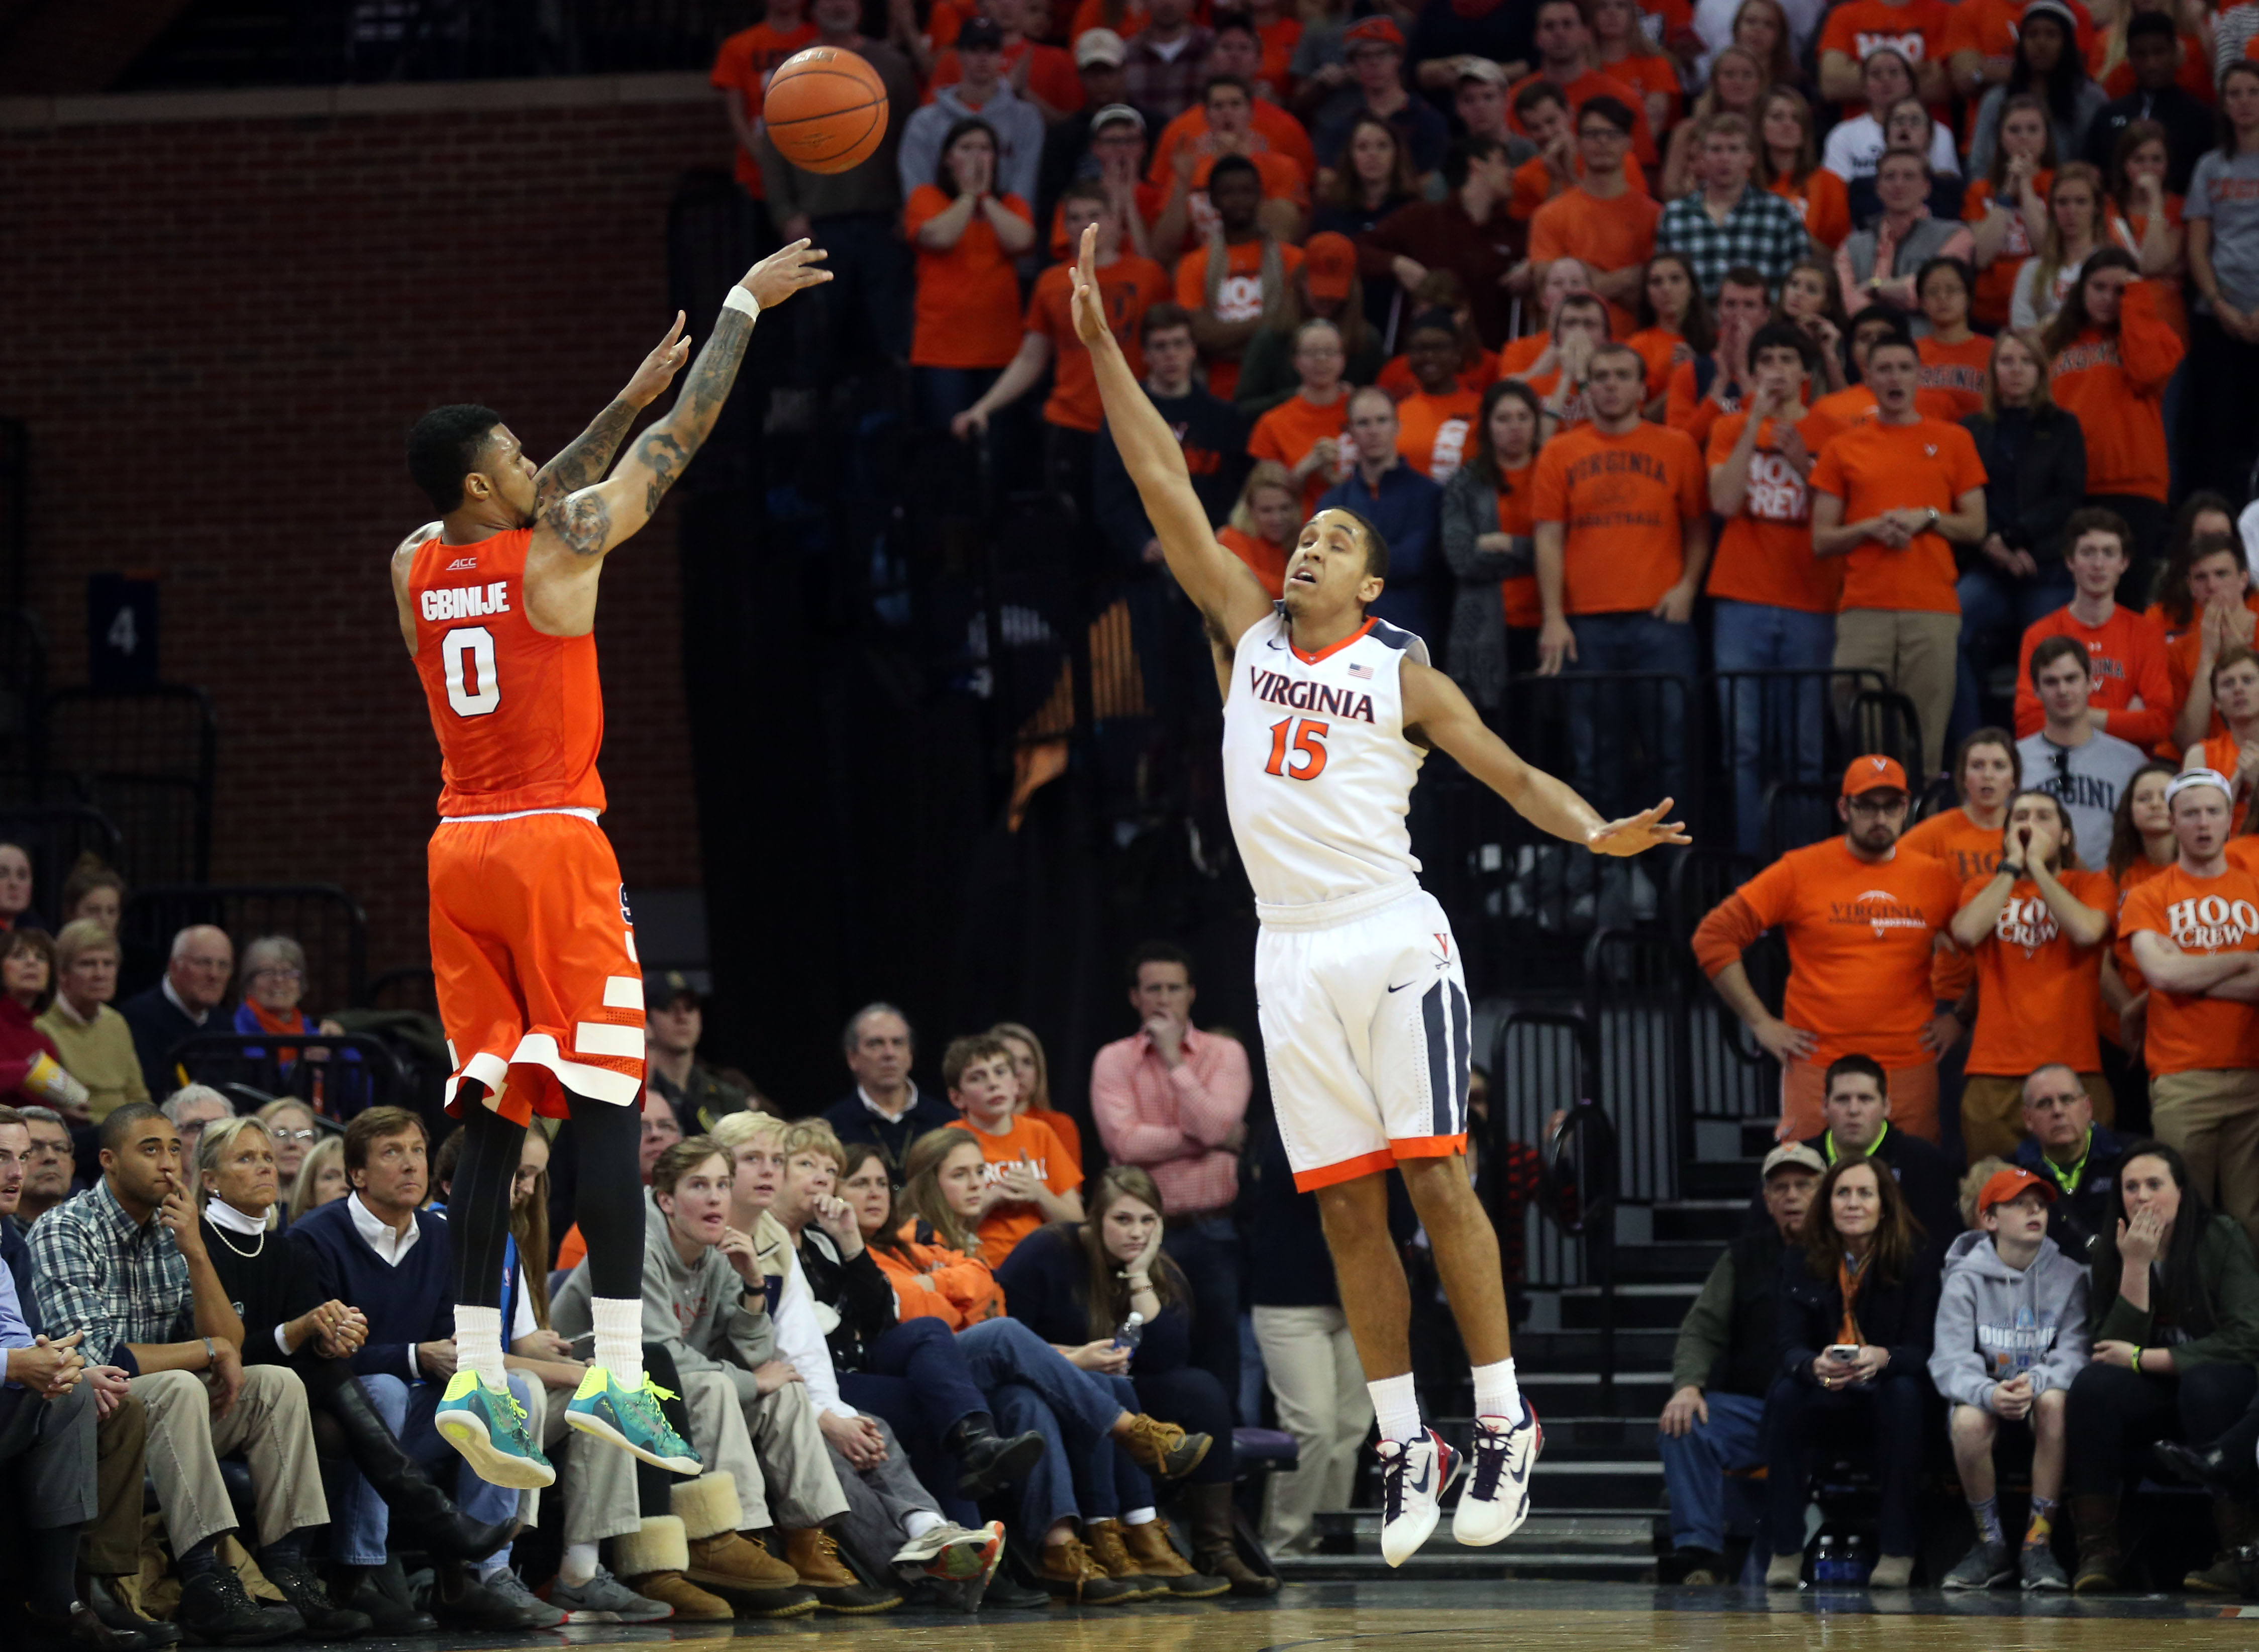 Syracuse guard Michael Gbinije excelling for Orange | WTOP